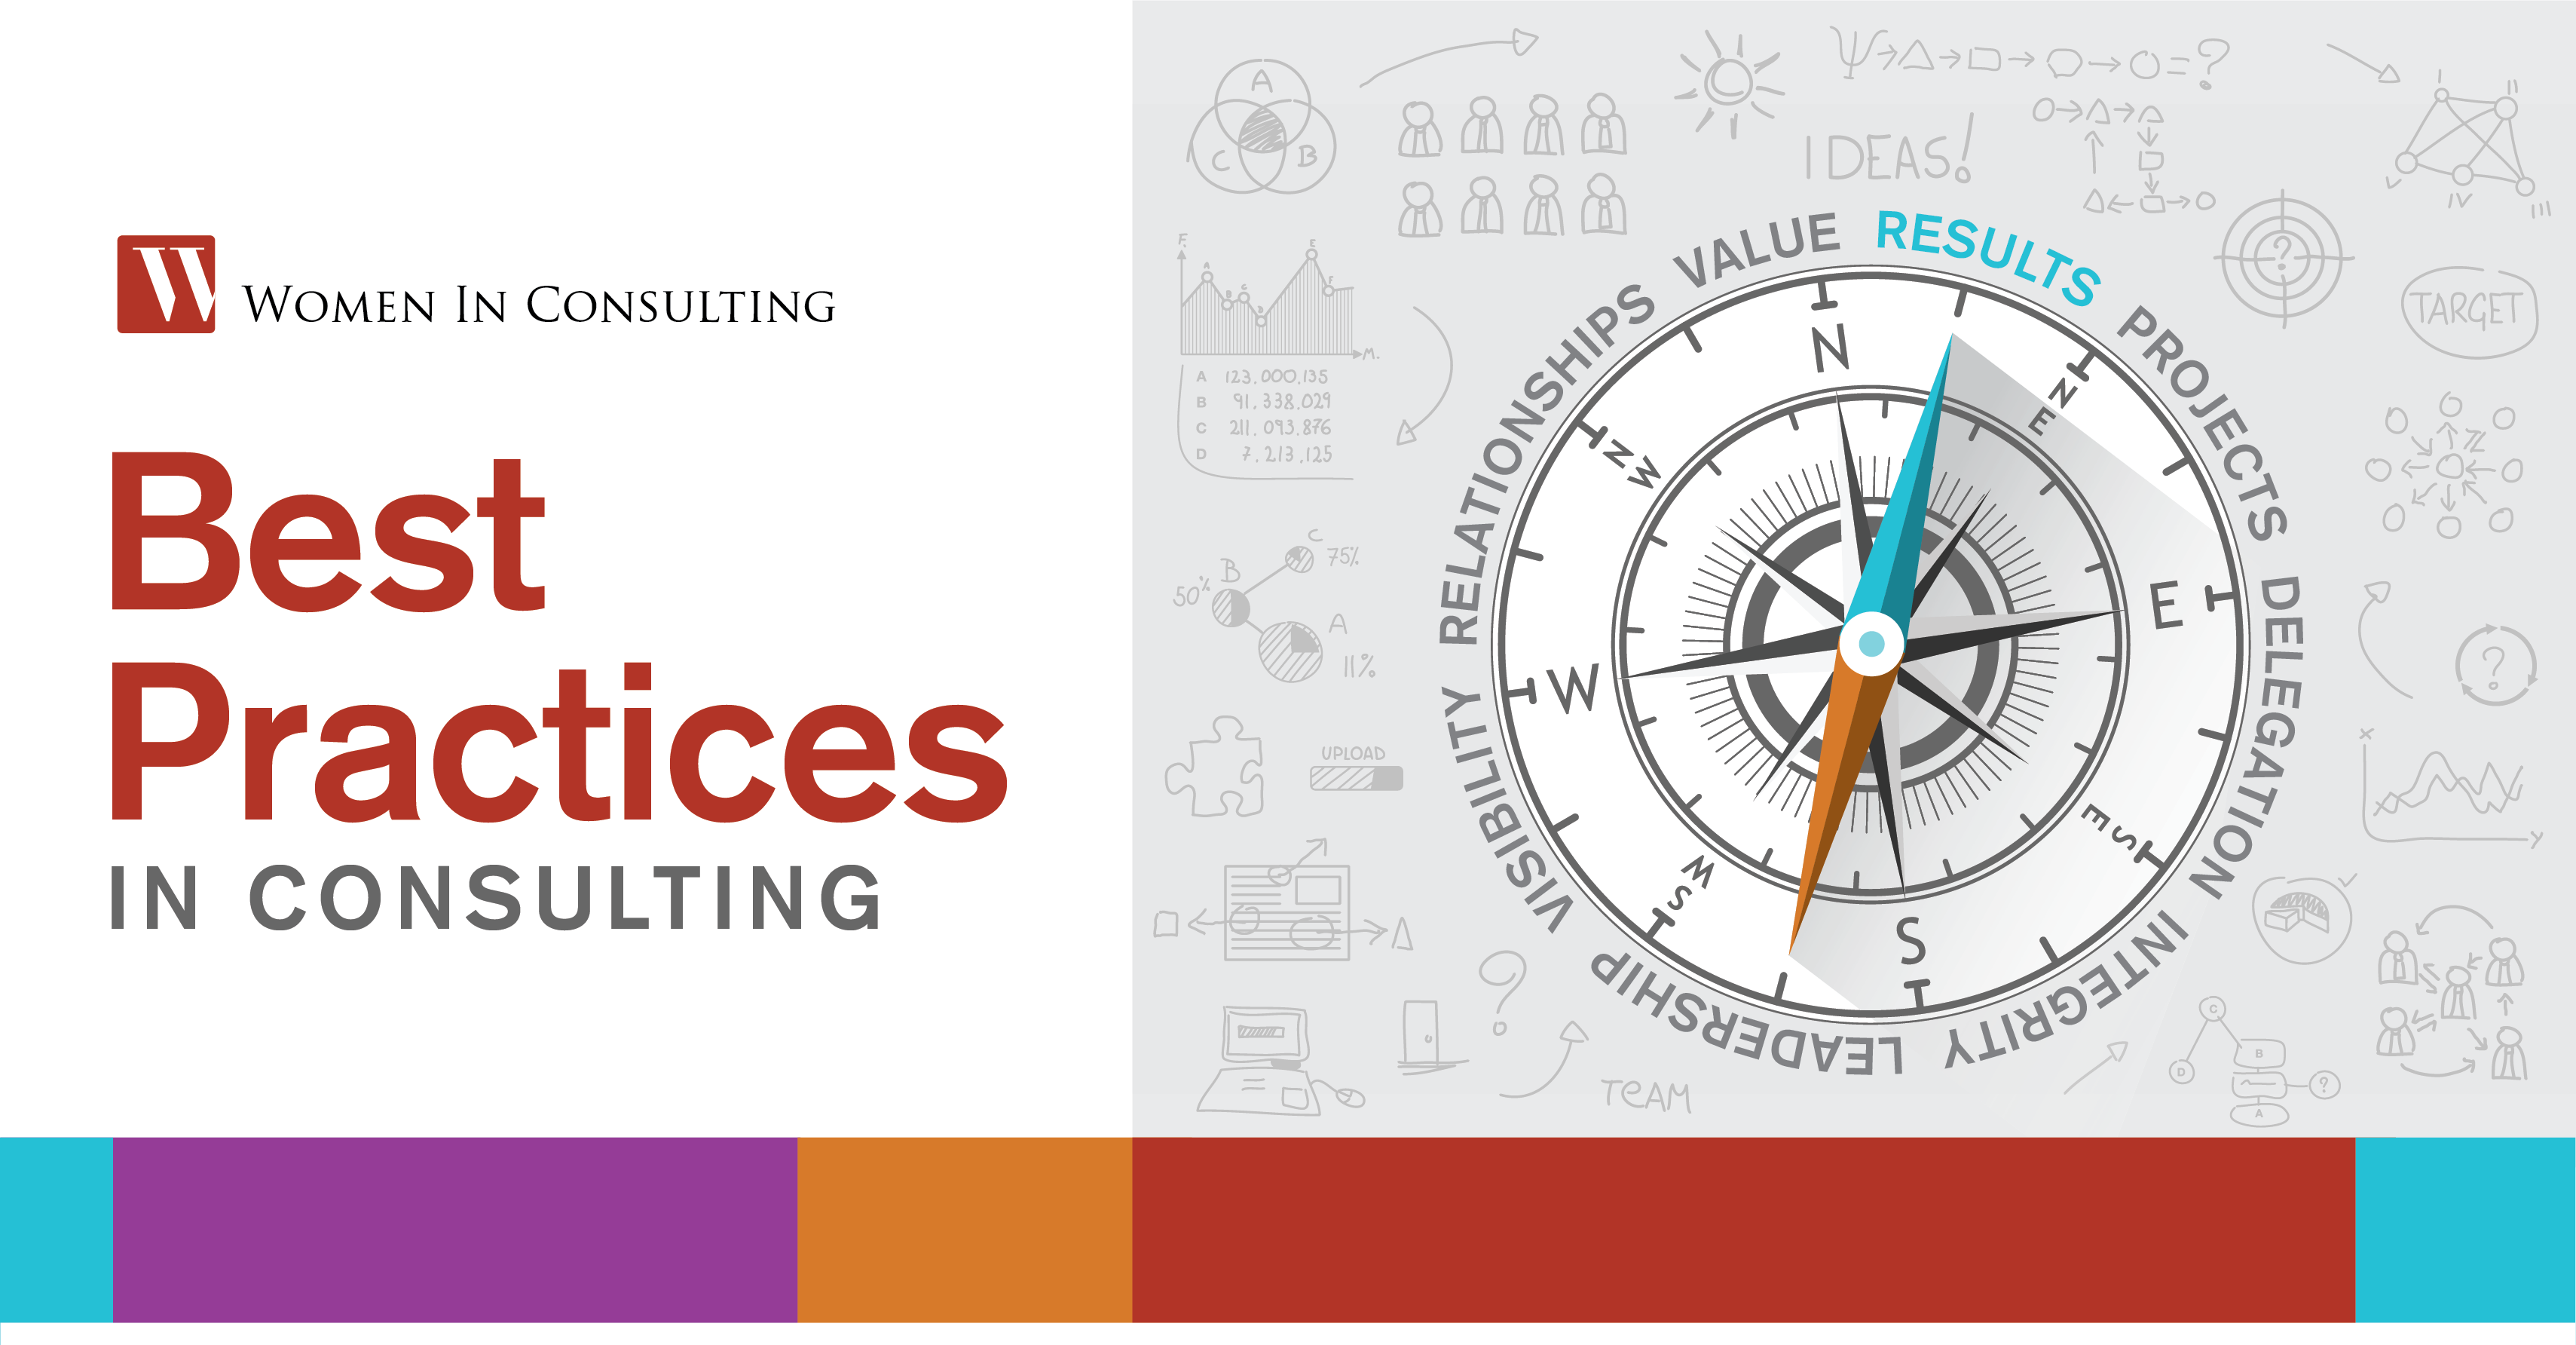 Women In Consulting: Best Practices In Consulting: Recommendations from Women In Consulting Annual Survey